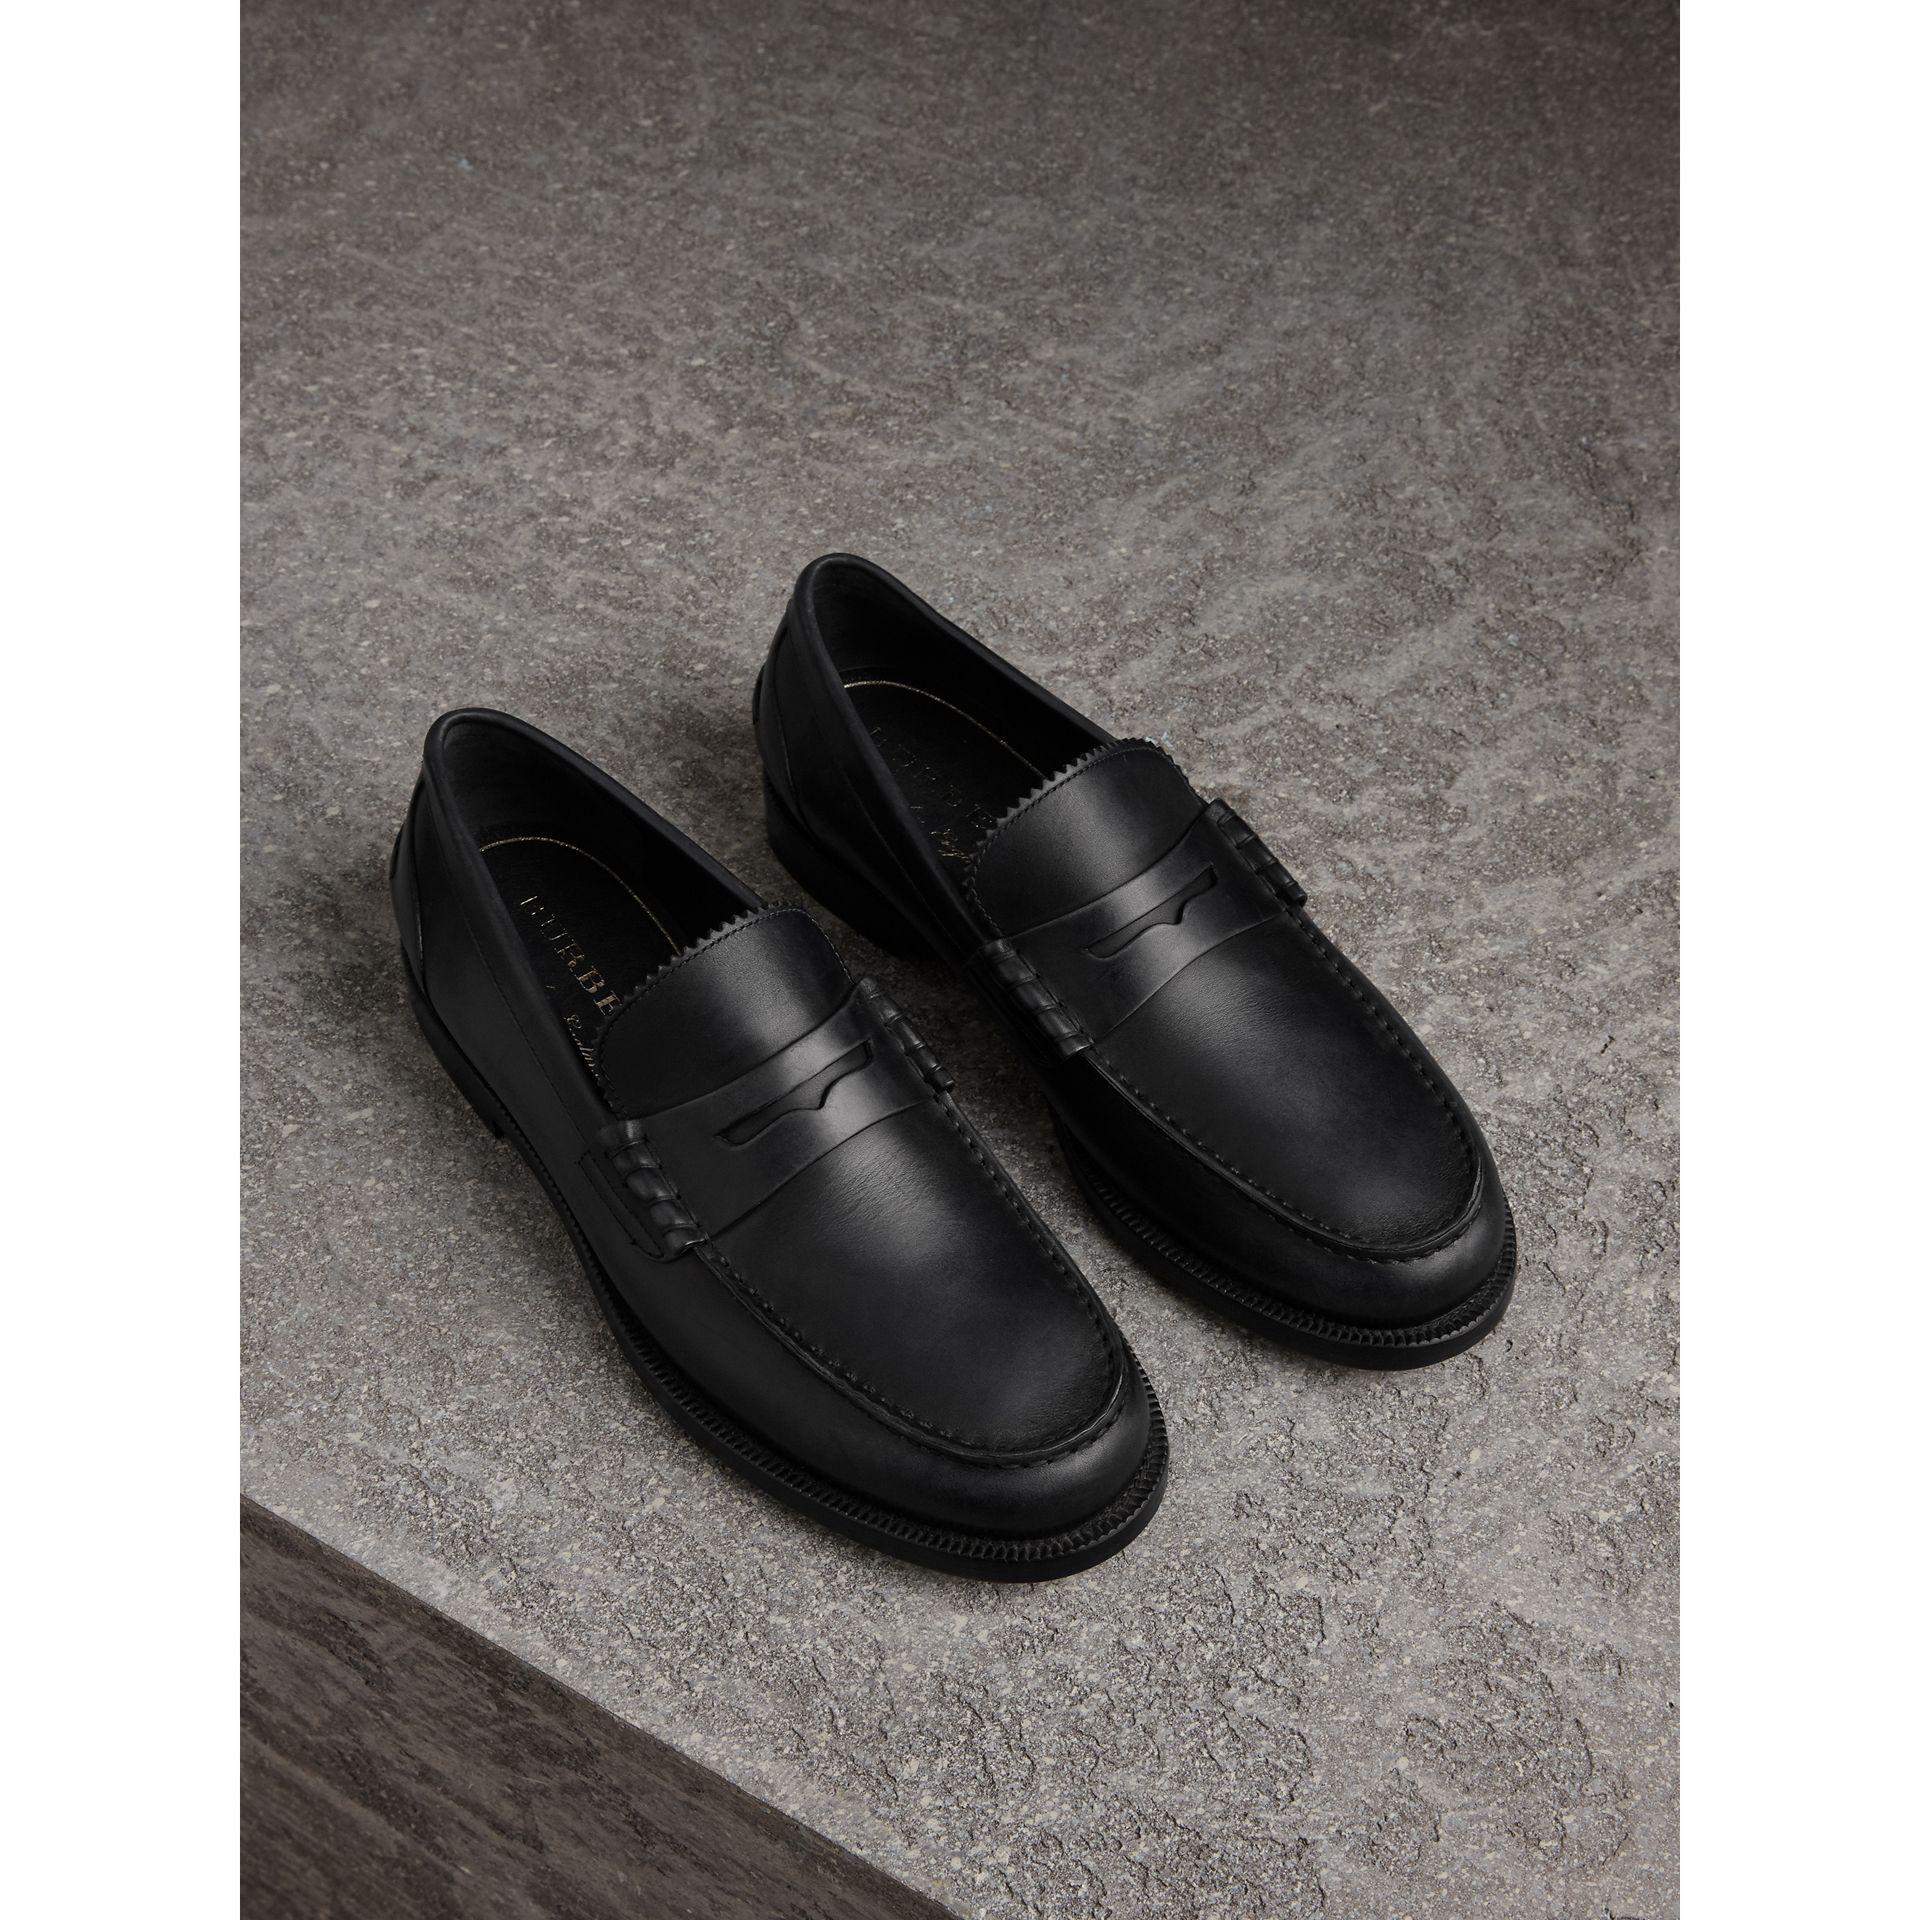 2c8cf3d7889 Burberry Leather Penny Loafers in Black for Men - Lyst